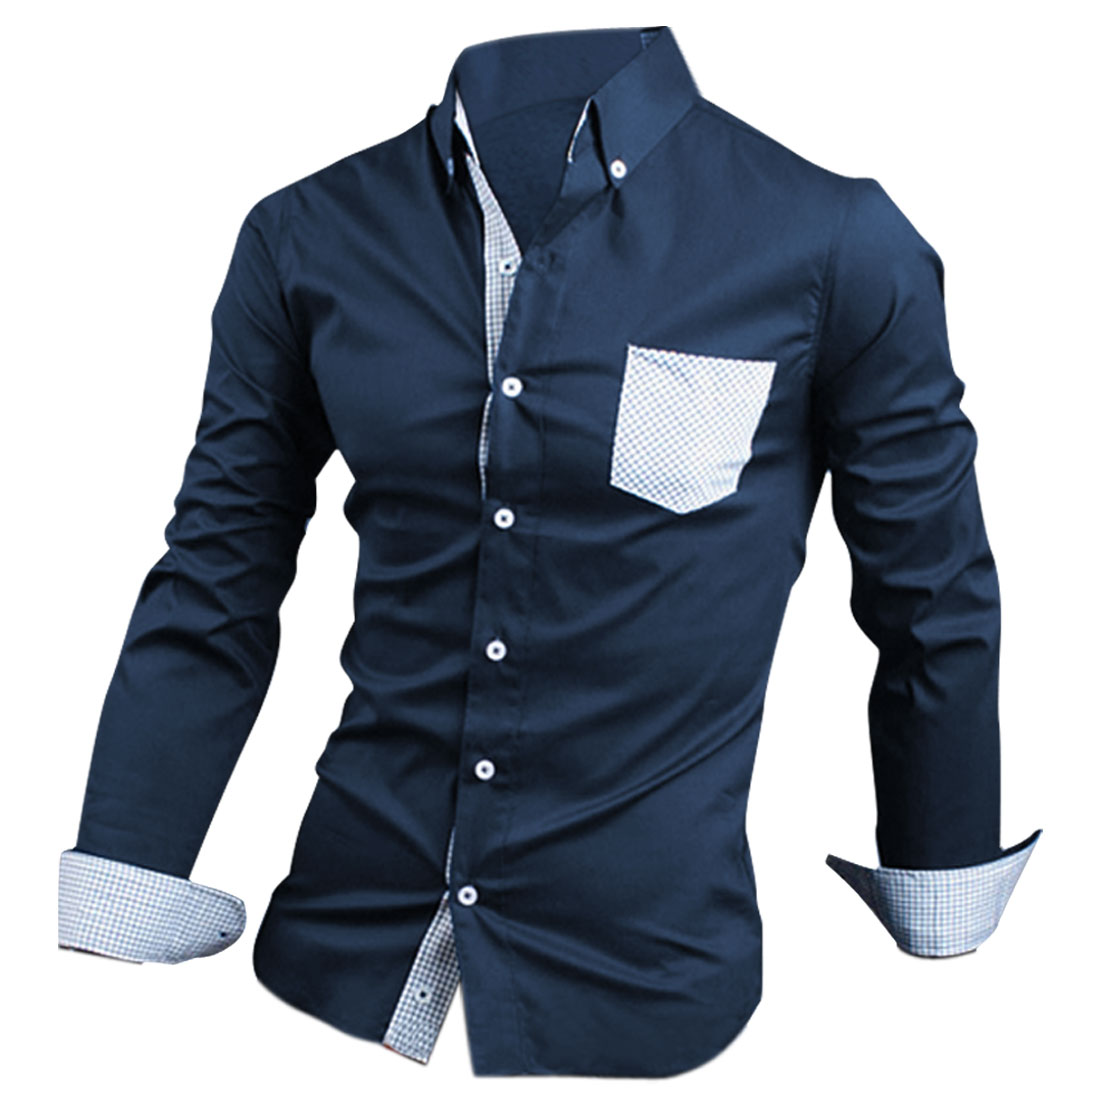 Men's Point Collar Patchwork Pockets Long Sleeves Dark Blue Shirt M